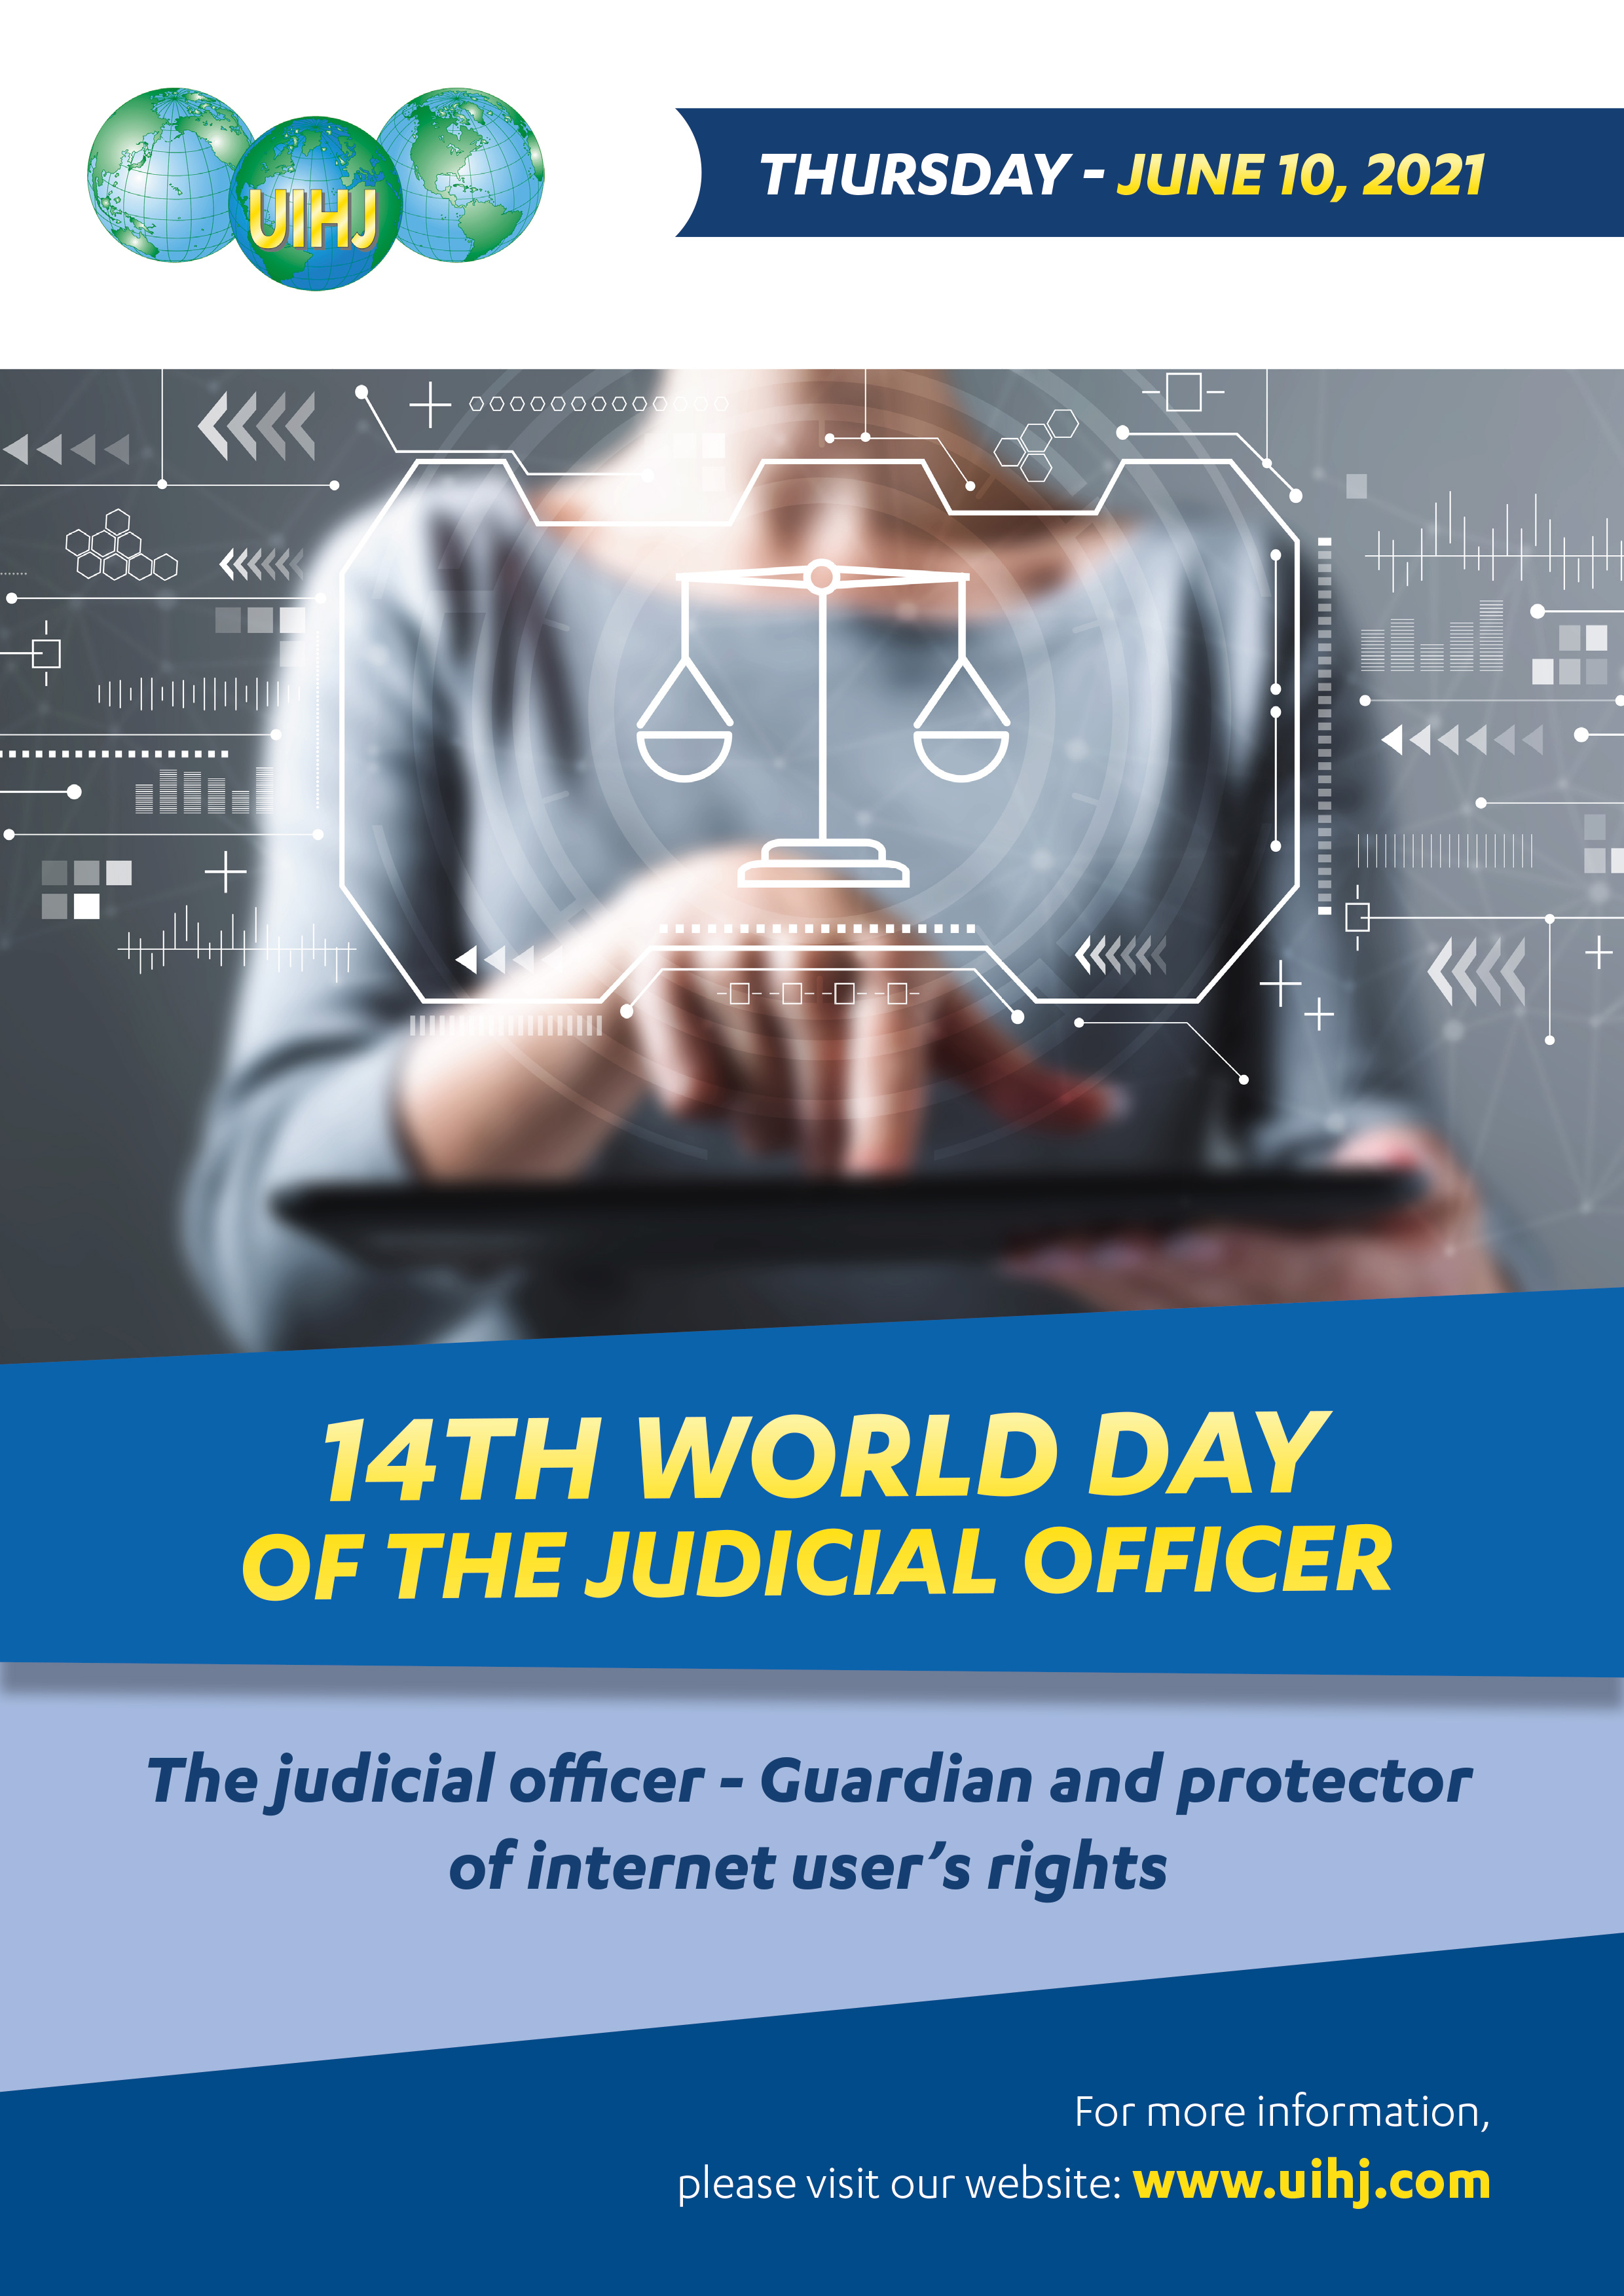 14TH WORLD DAY OF THE JUDICIAL OFFICER 2021